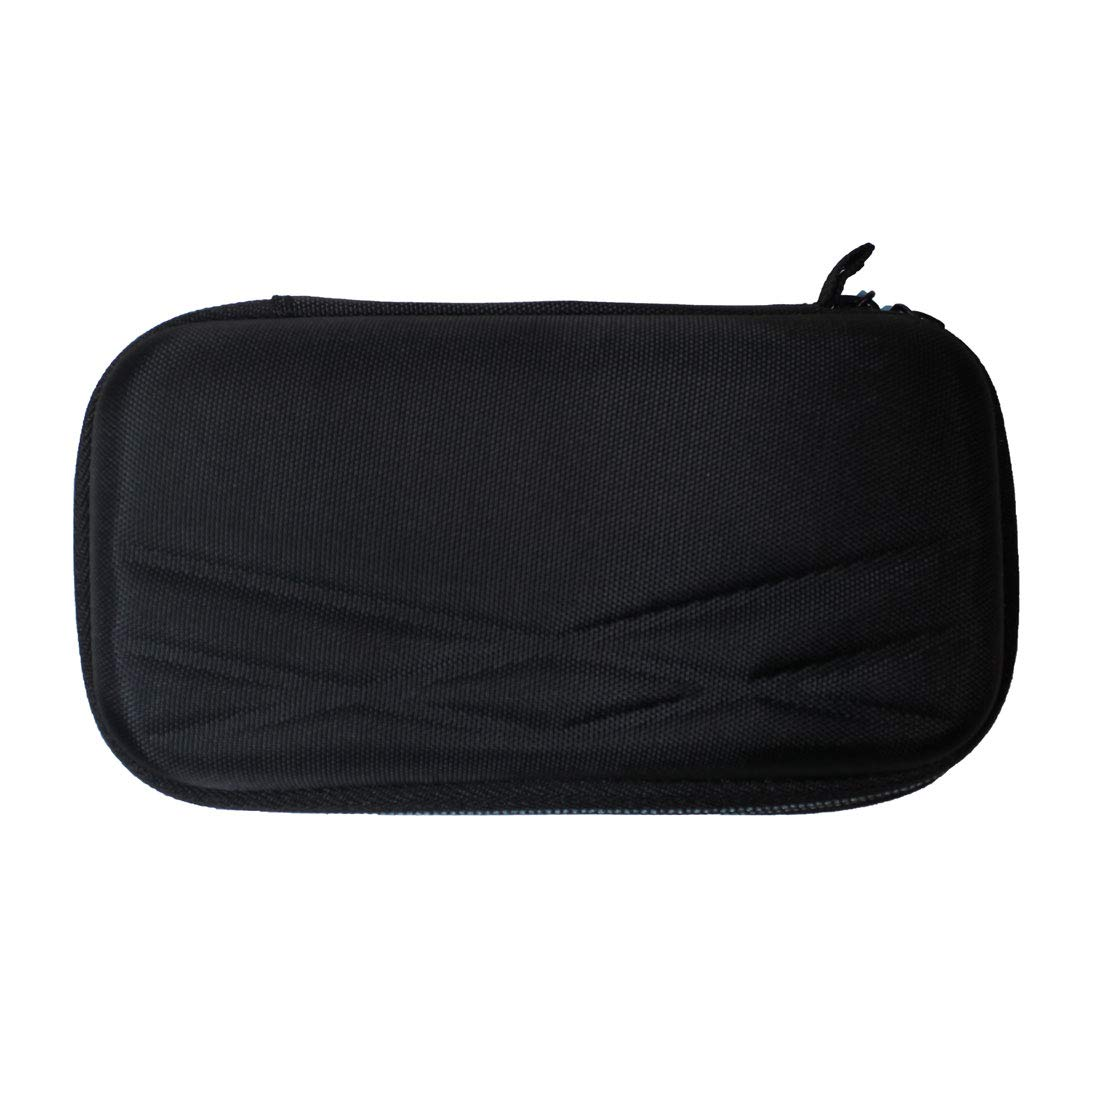 TUDIA Hard Travel EVA Shock Absorption Carrying Storage Case Compatible with Redragon M711 Cobra Ergonomic Gaming Mouse